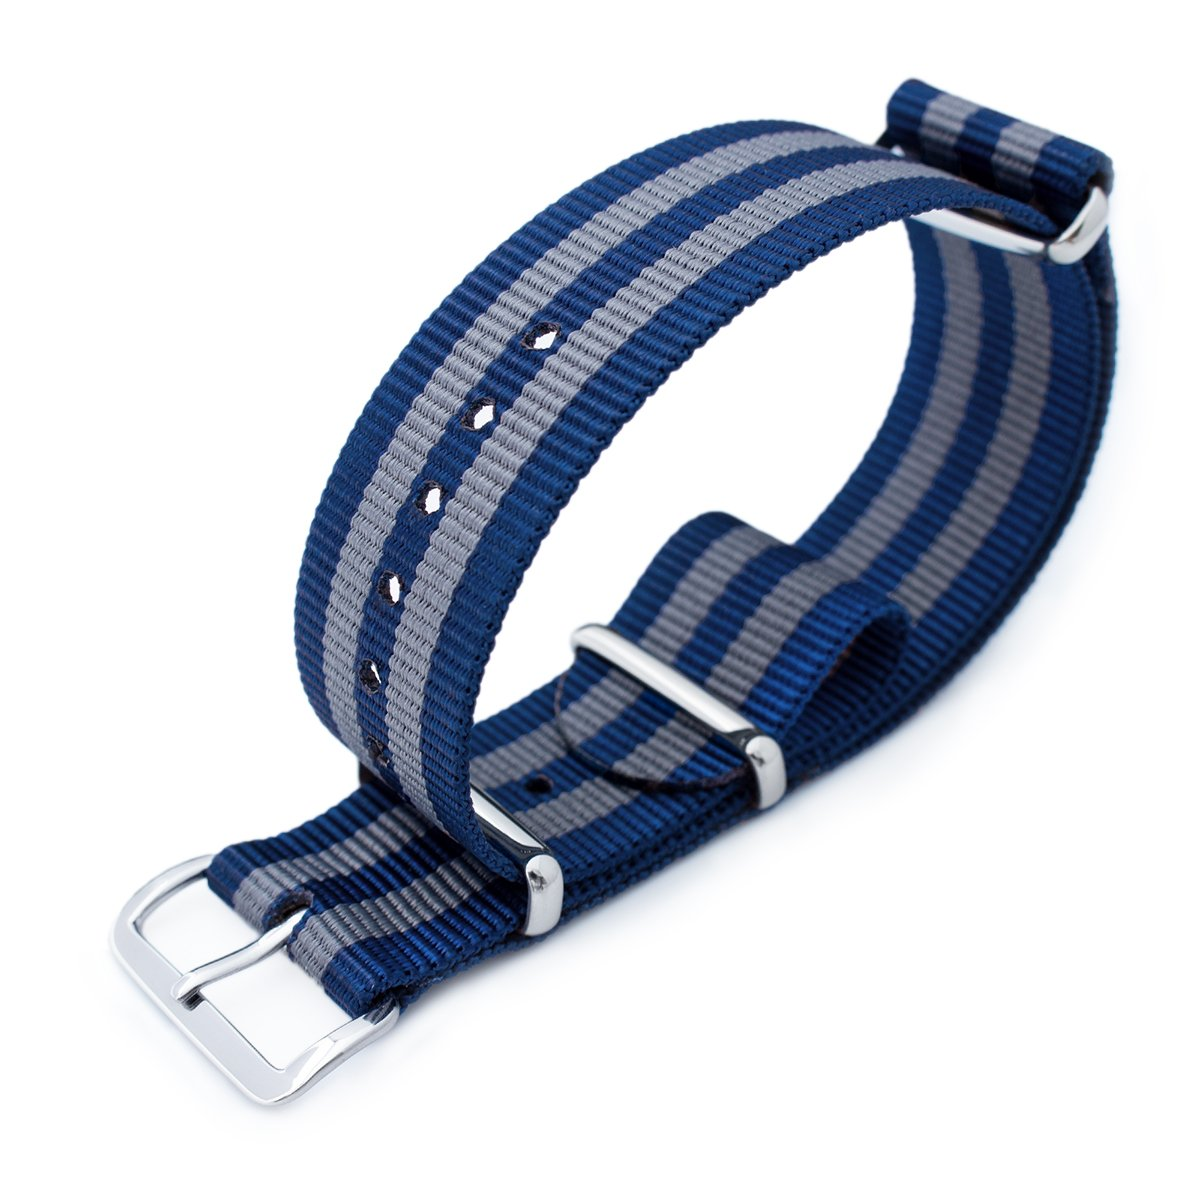 MiLTAT 18mm 20mm or 21mm G10 military watch strap ballistic nylon armband Polished Navy & Grey Strapcode Watch Bands